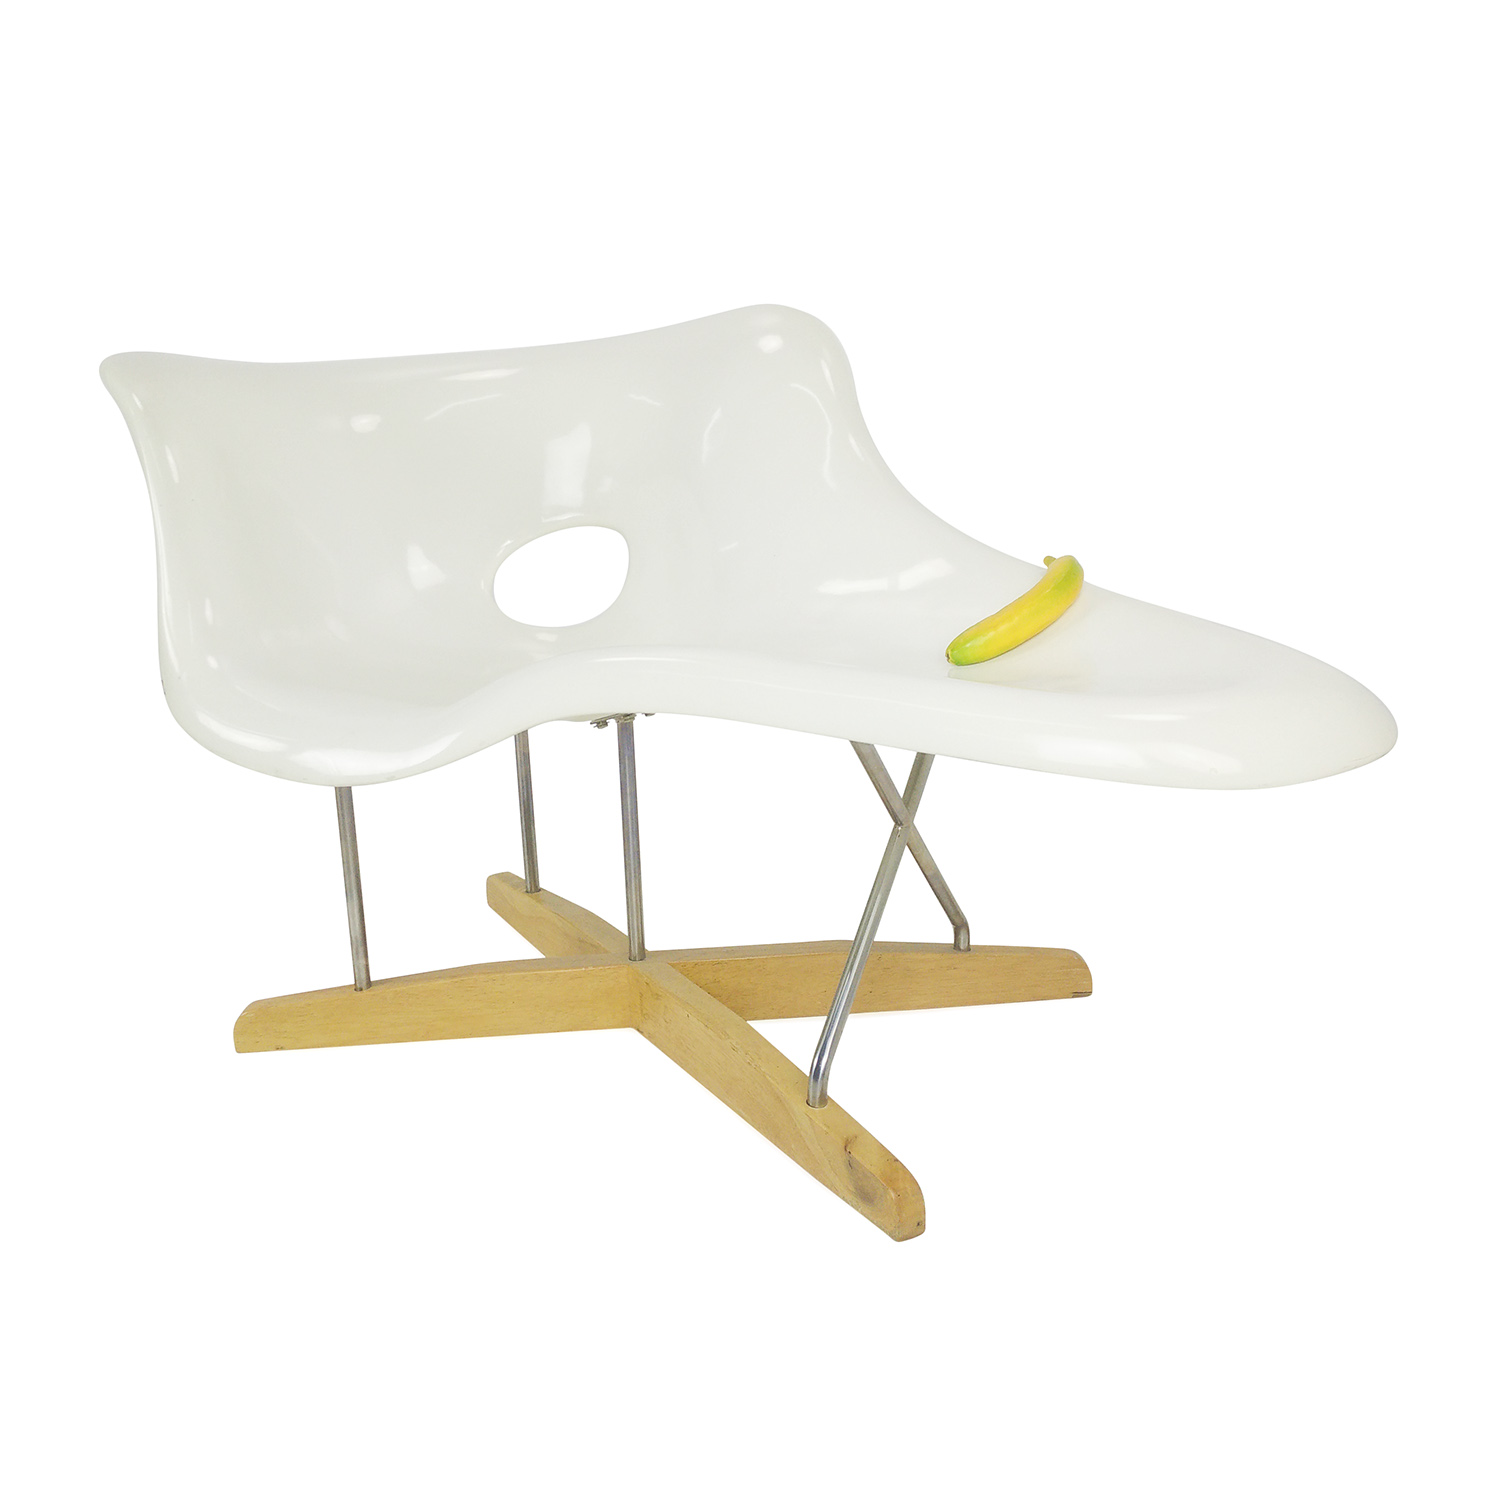 63 off eames replica of la chaise la chaise replica for Eames chaise